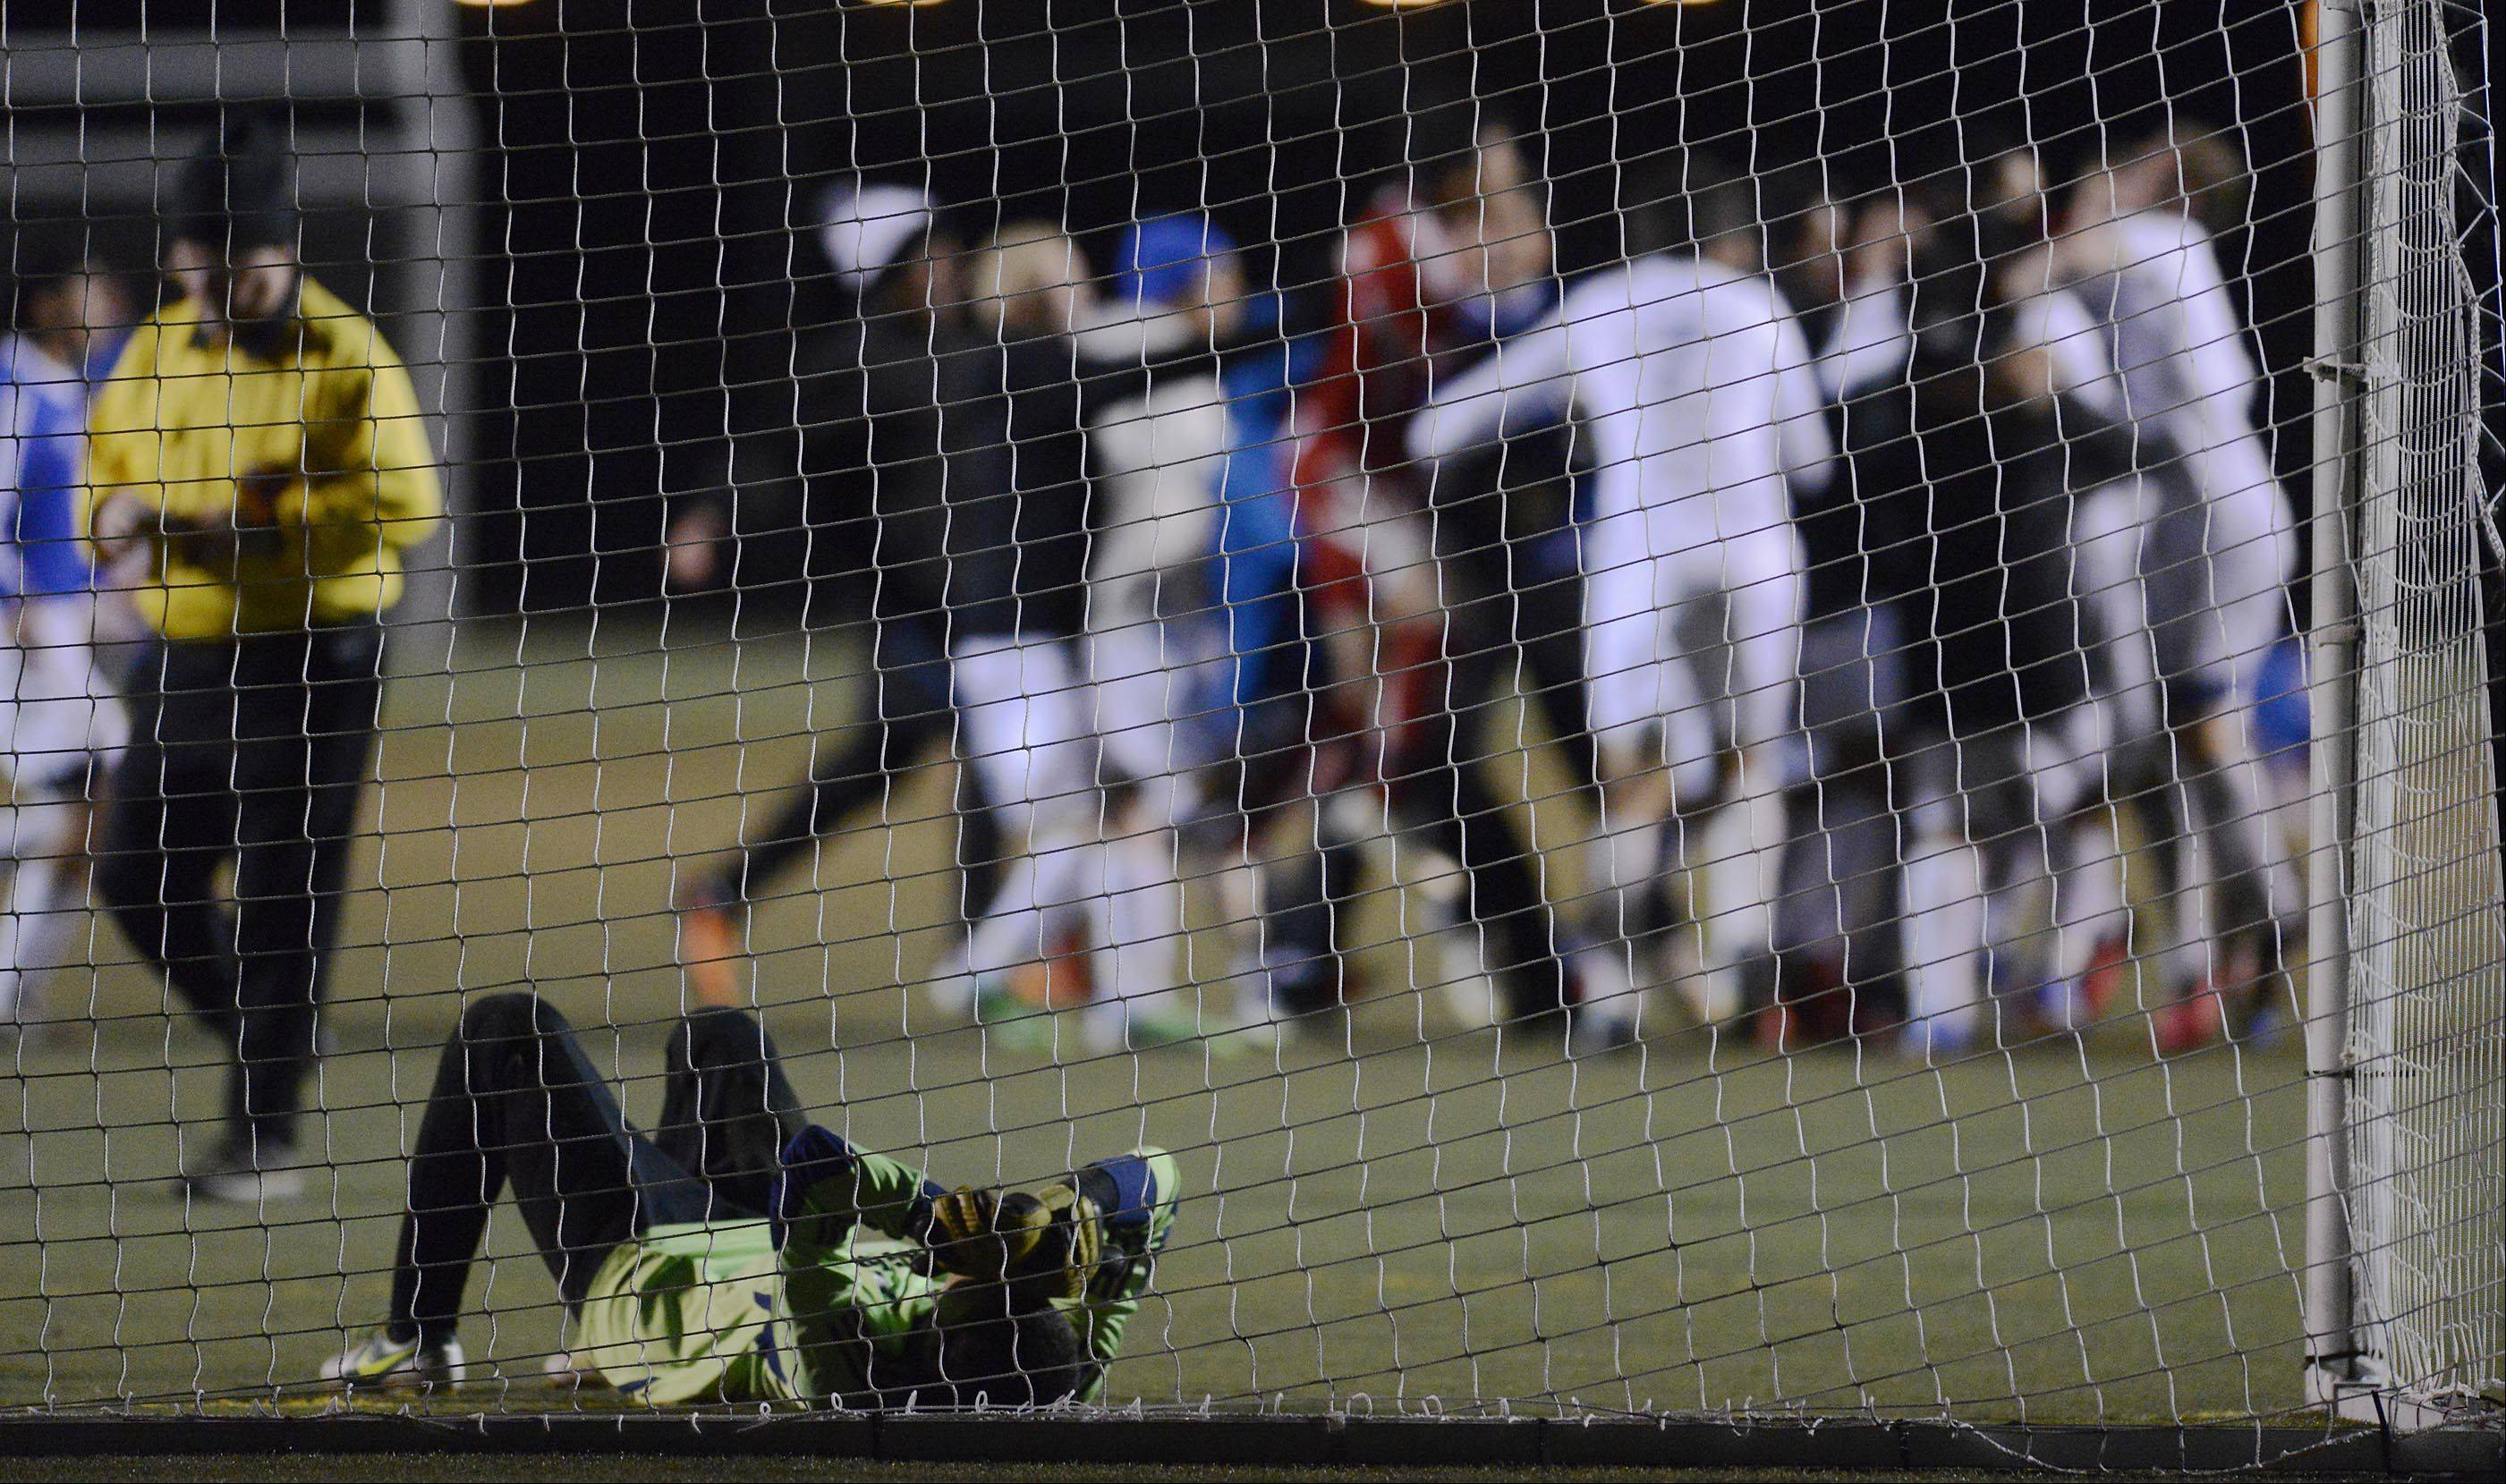 Dundee-Crown goalkeeper Jose Gonzalez covers his eyes as Larkin celebrates its 4-2 shootout win Wednesday at Millennium Field in Streamwood.